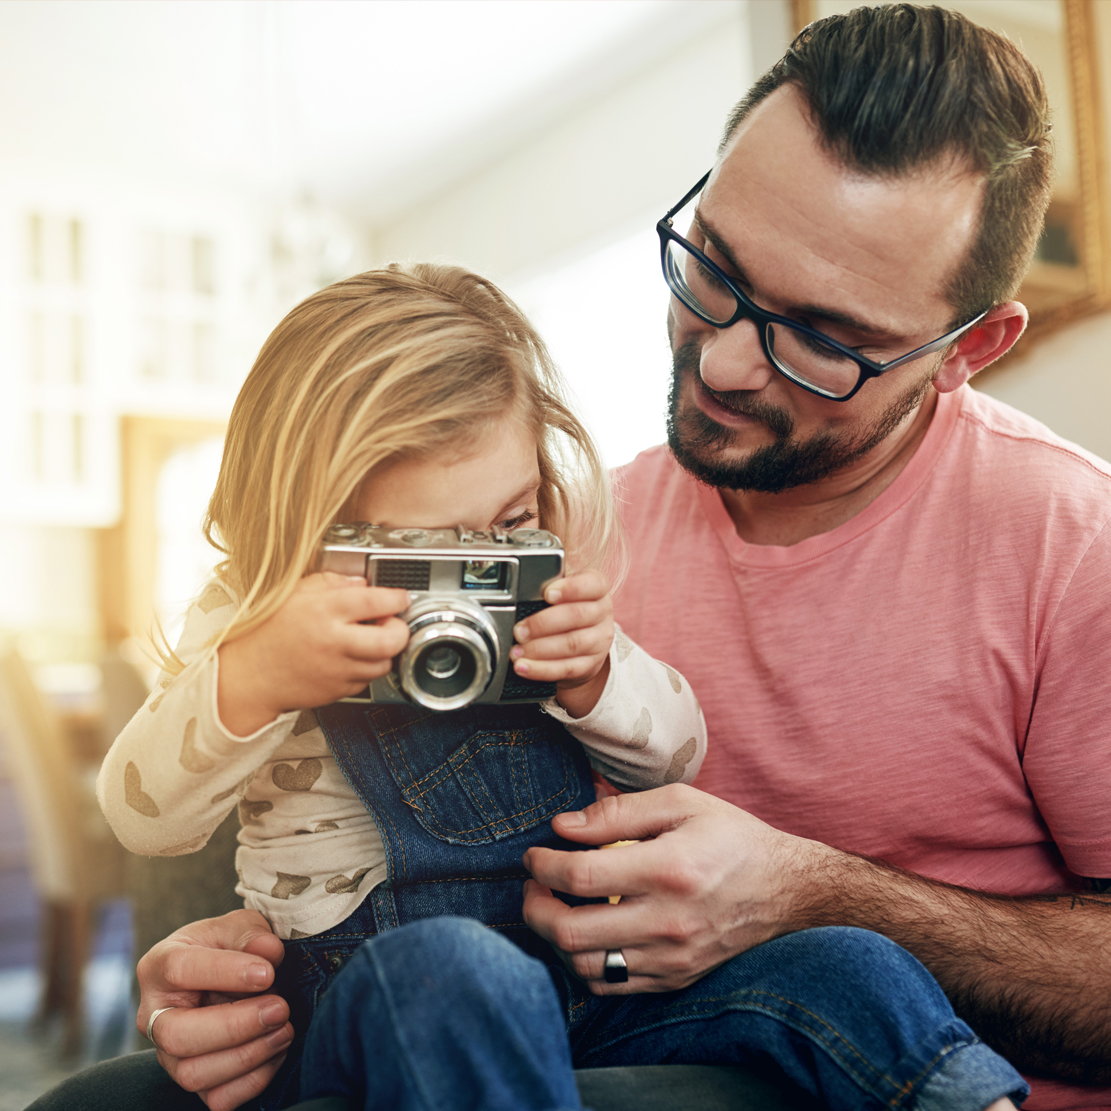 daughter sitting on fathers lap holding a camera and taking a picture